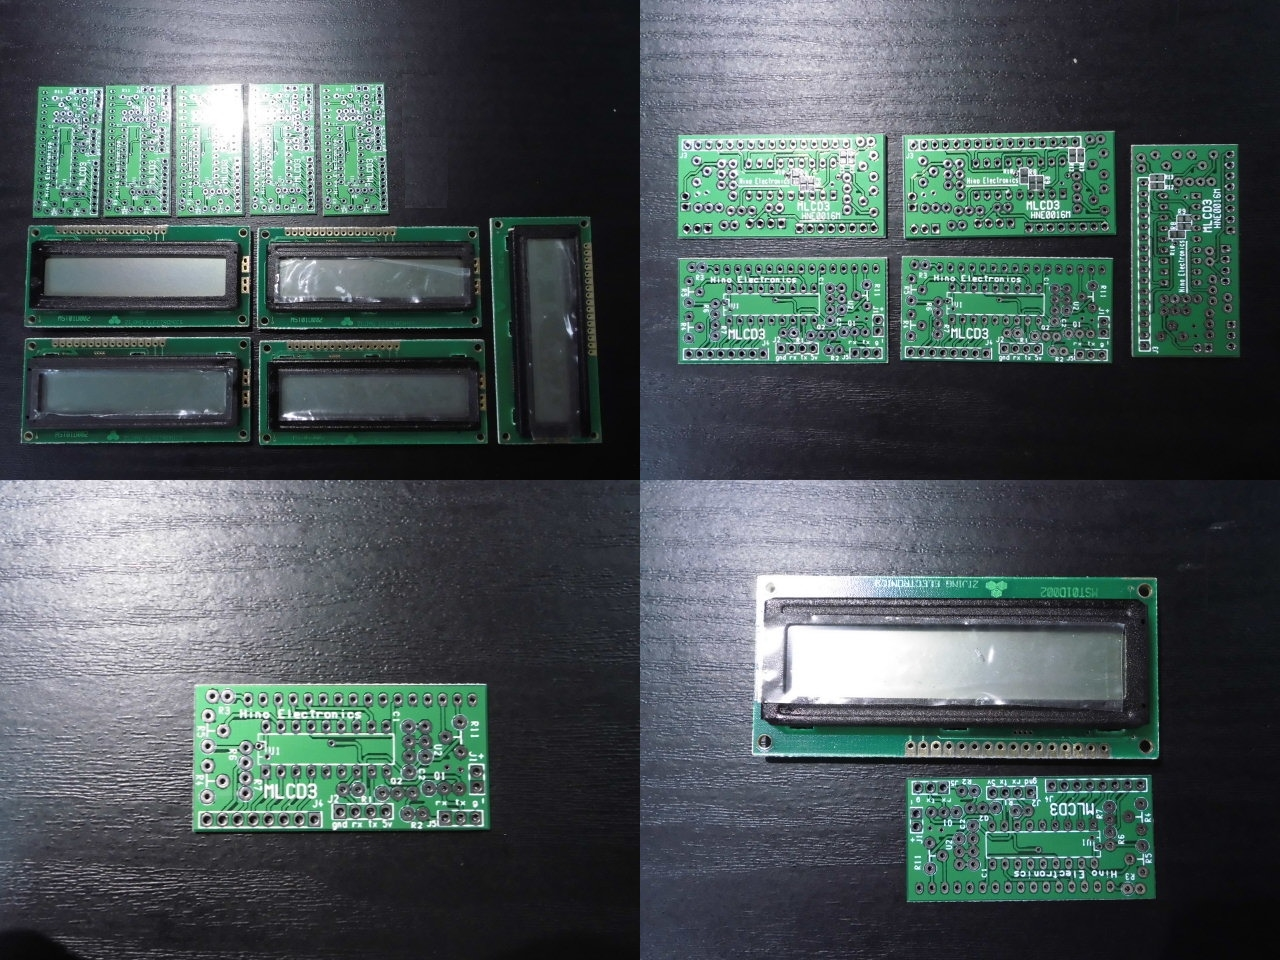 [HCS]汎用LCD基板と16x2LCD(白黒 BL無) 18pin PIC向け 5セット